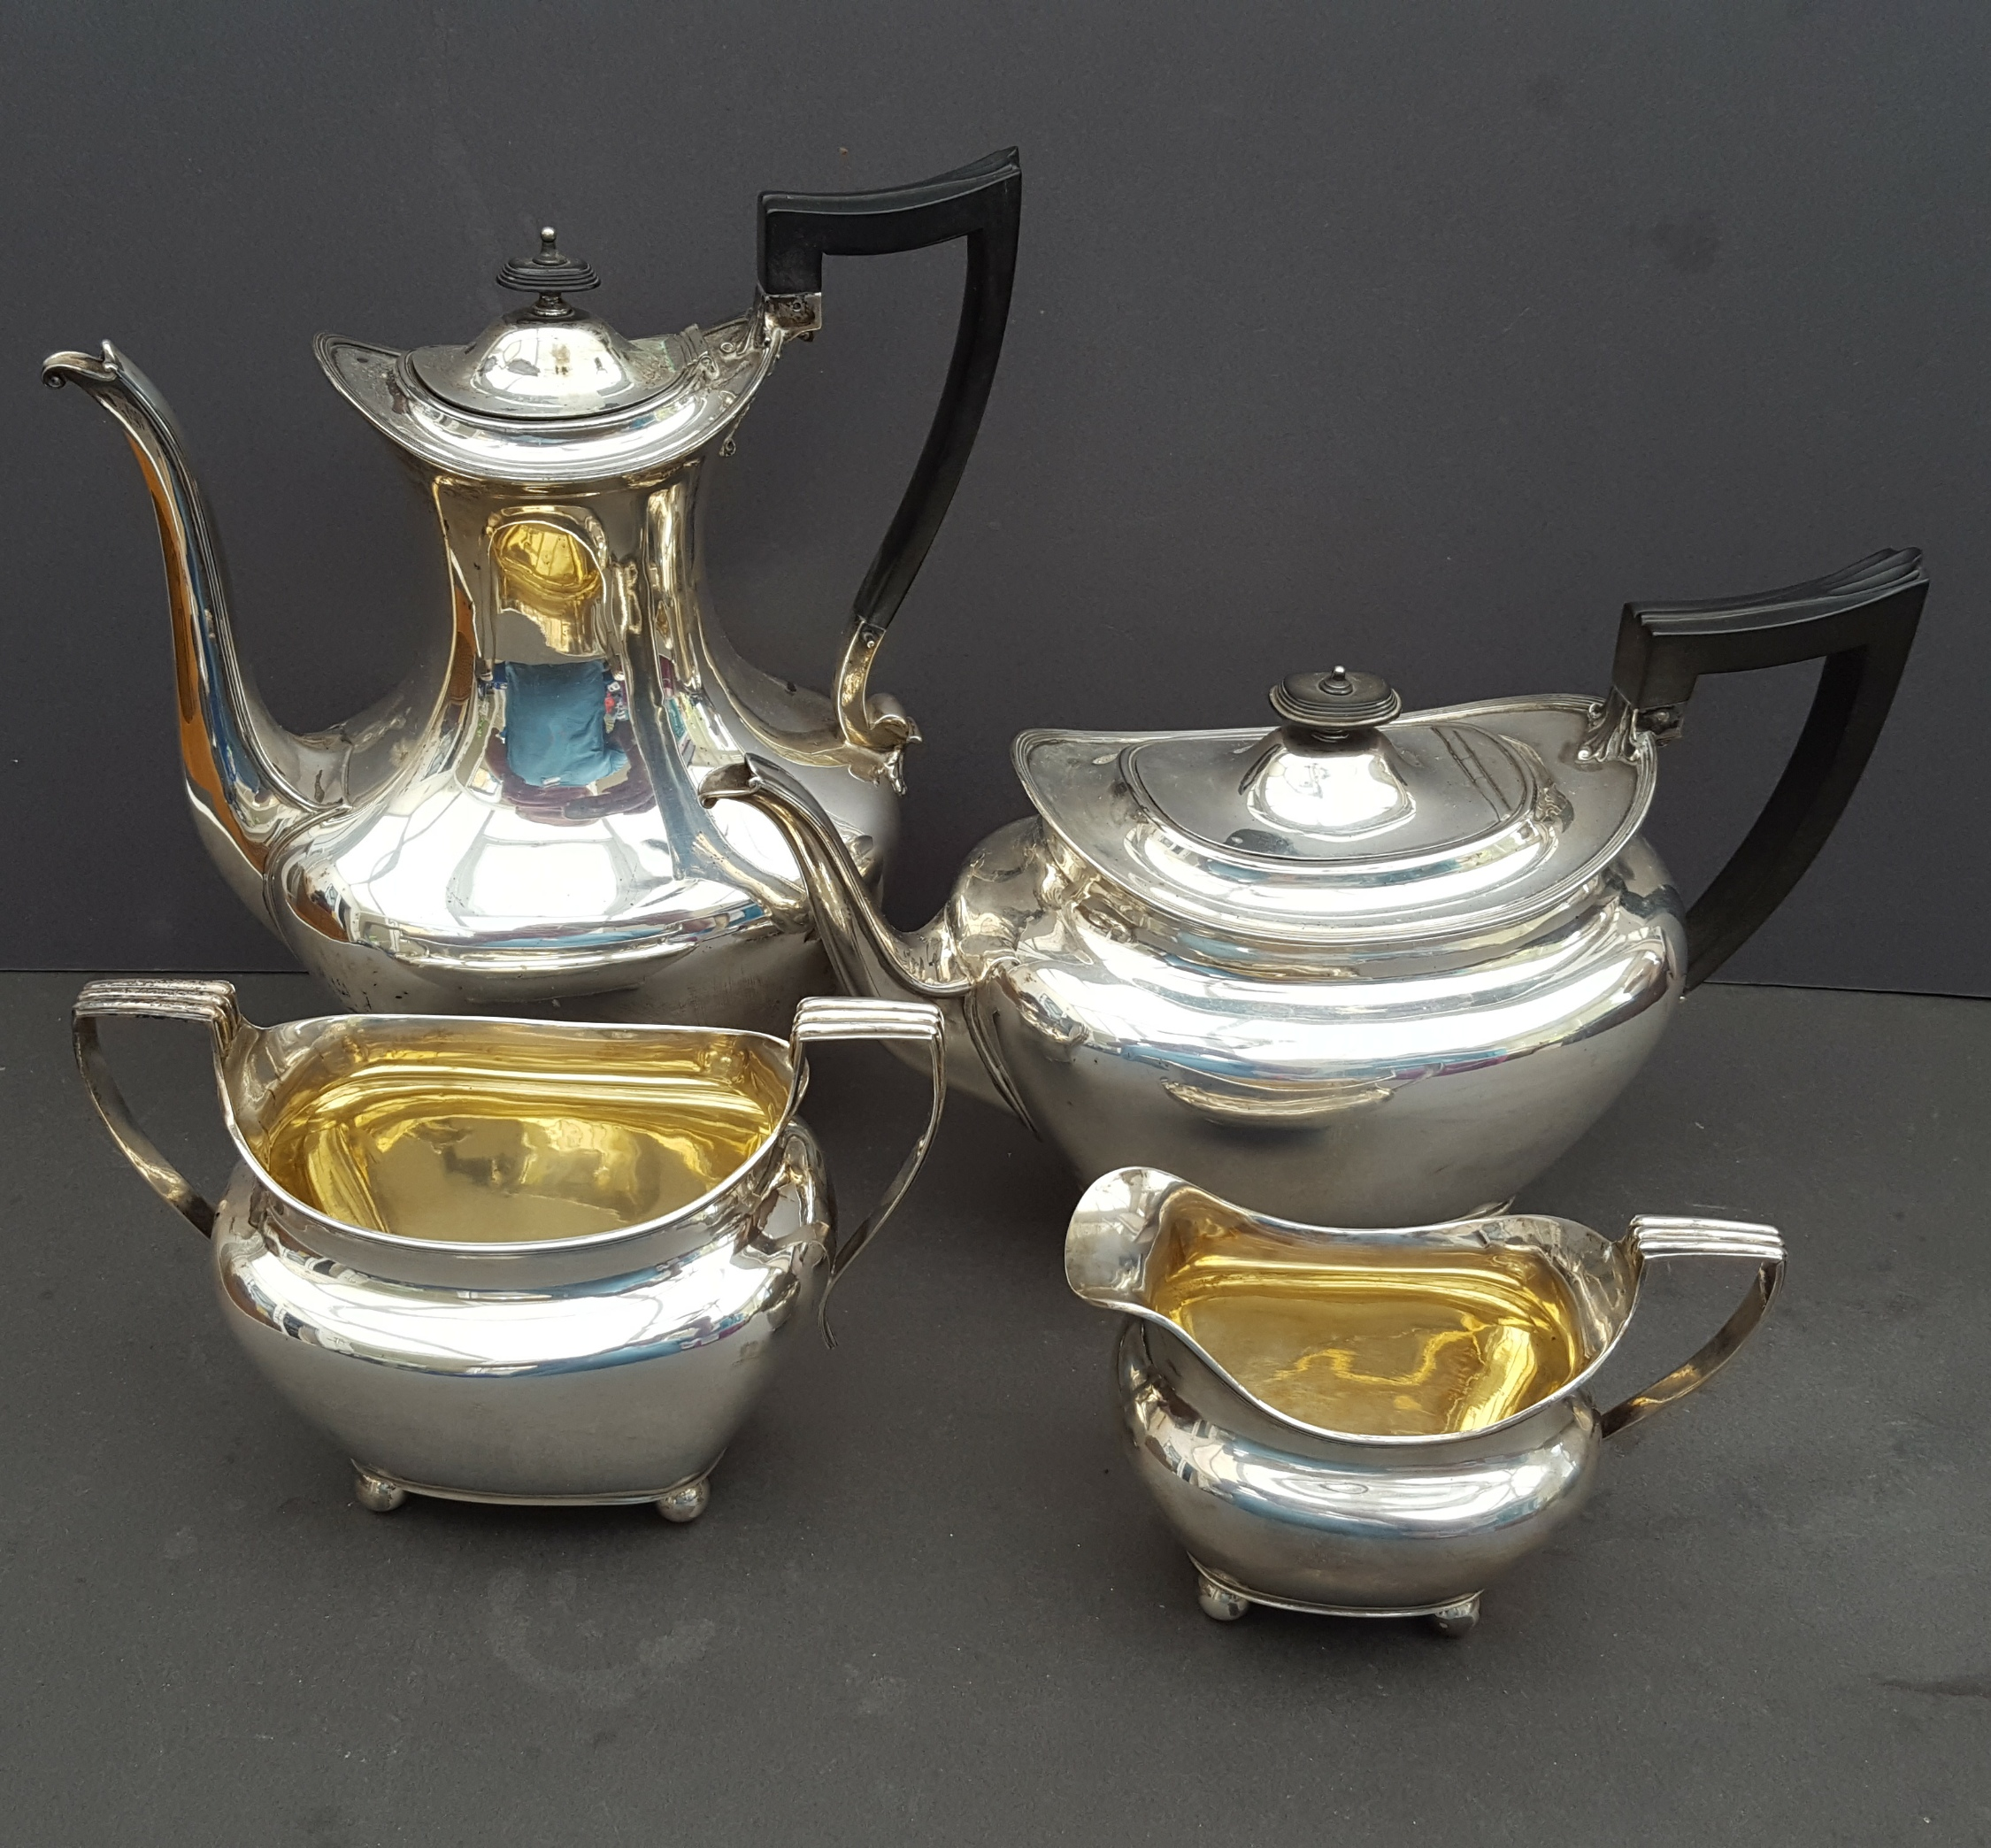 Vintage Silver Plated 4 Piece Tea & Coffee Set